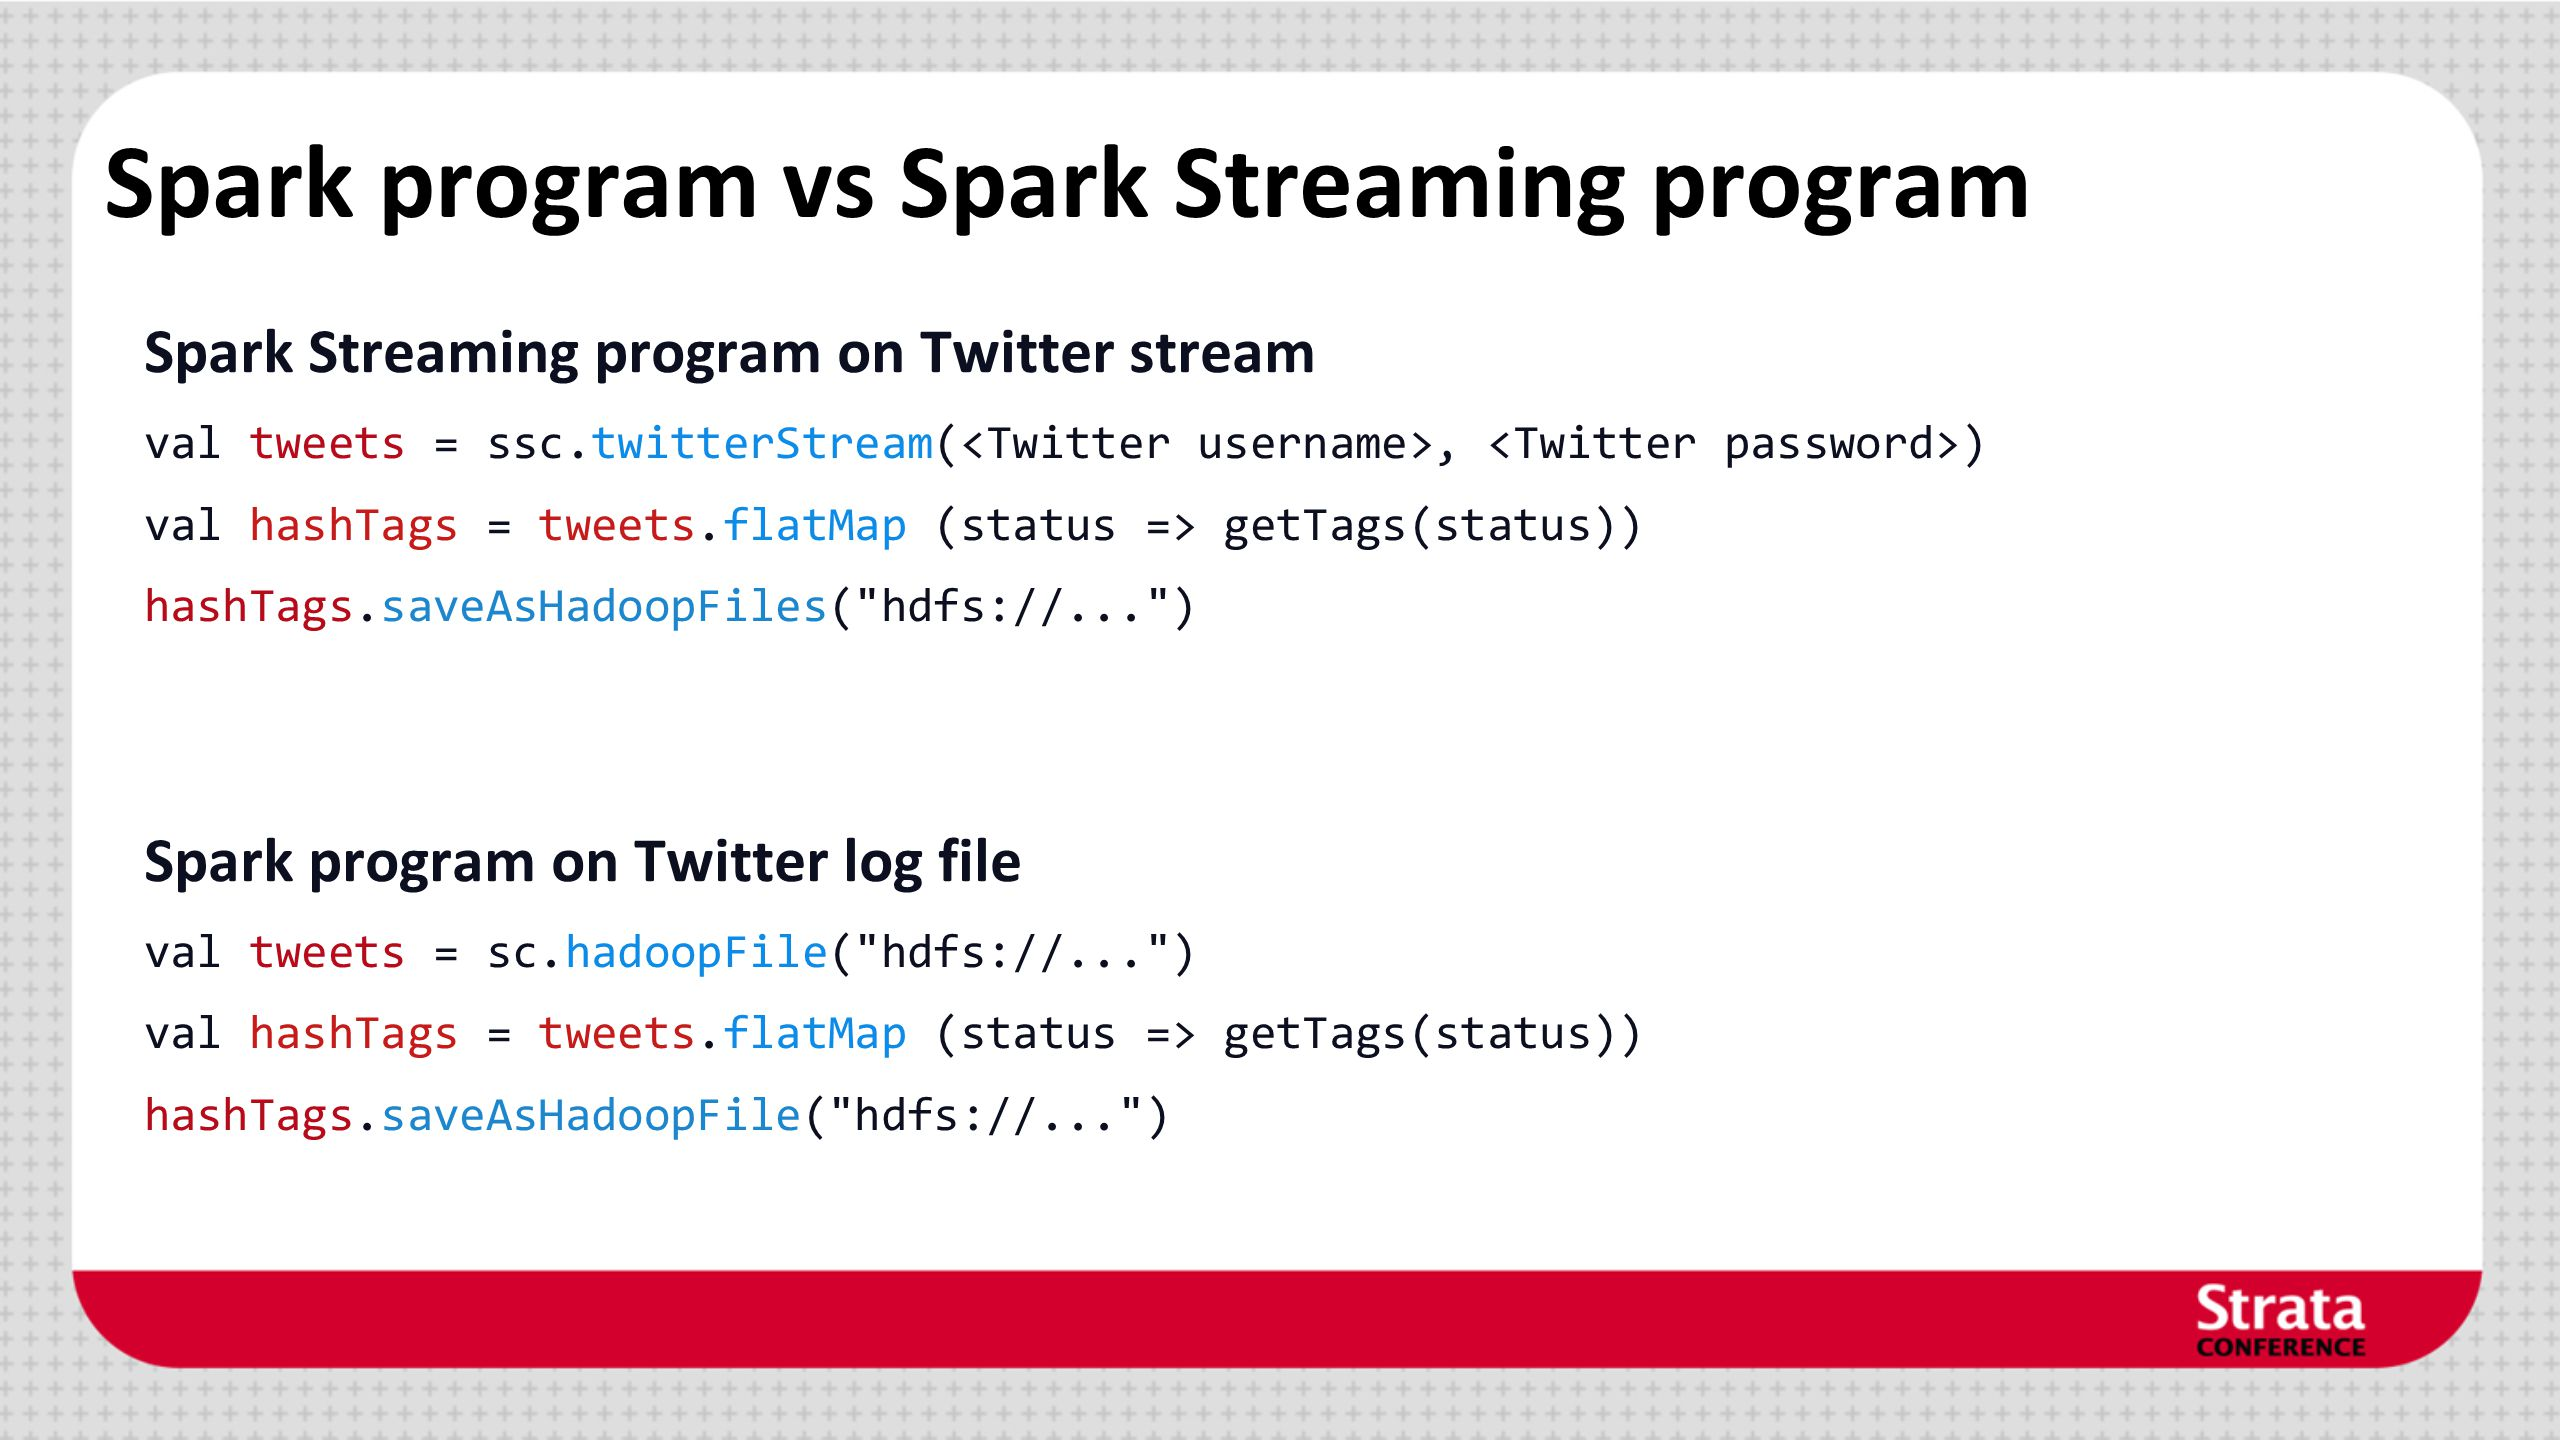 Spark program vs Spark Streaming program